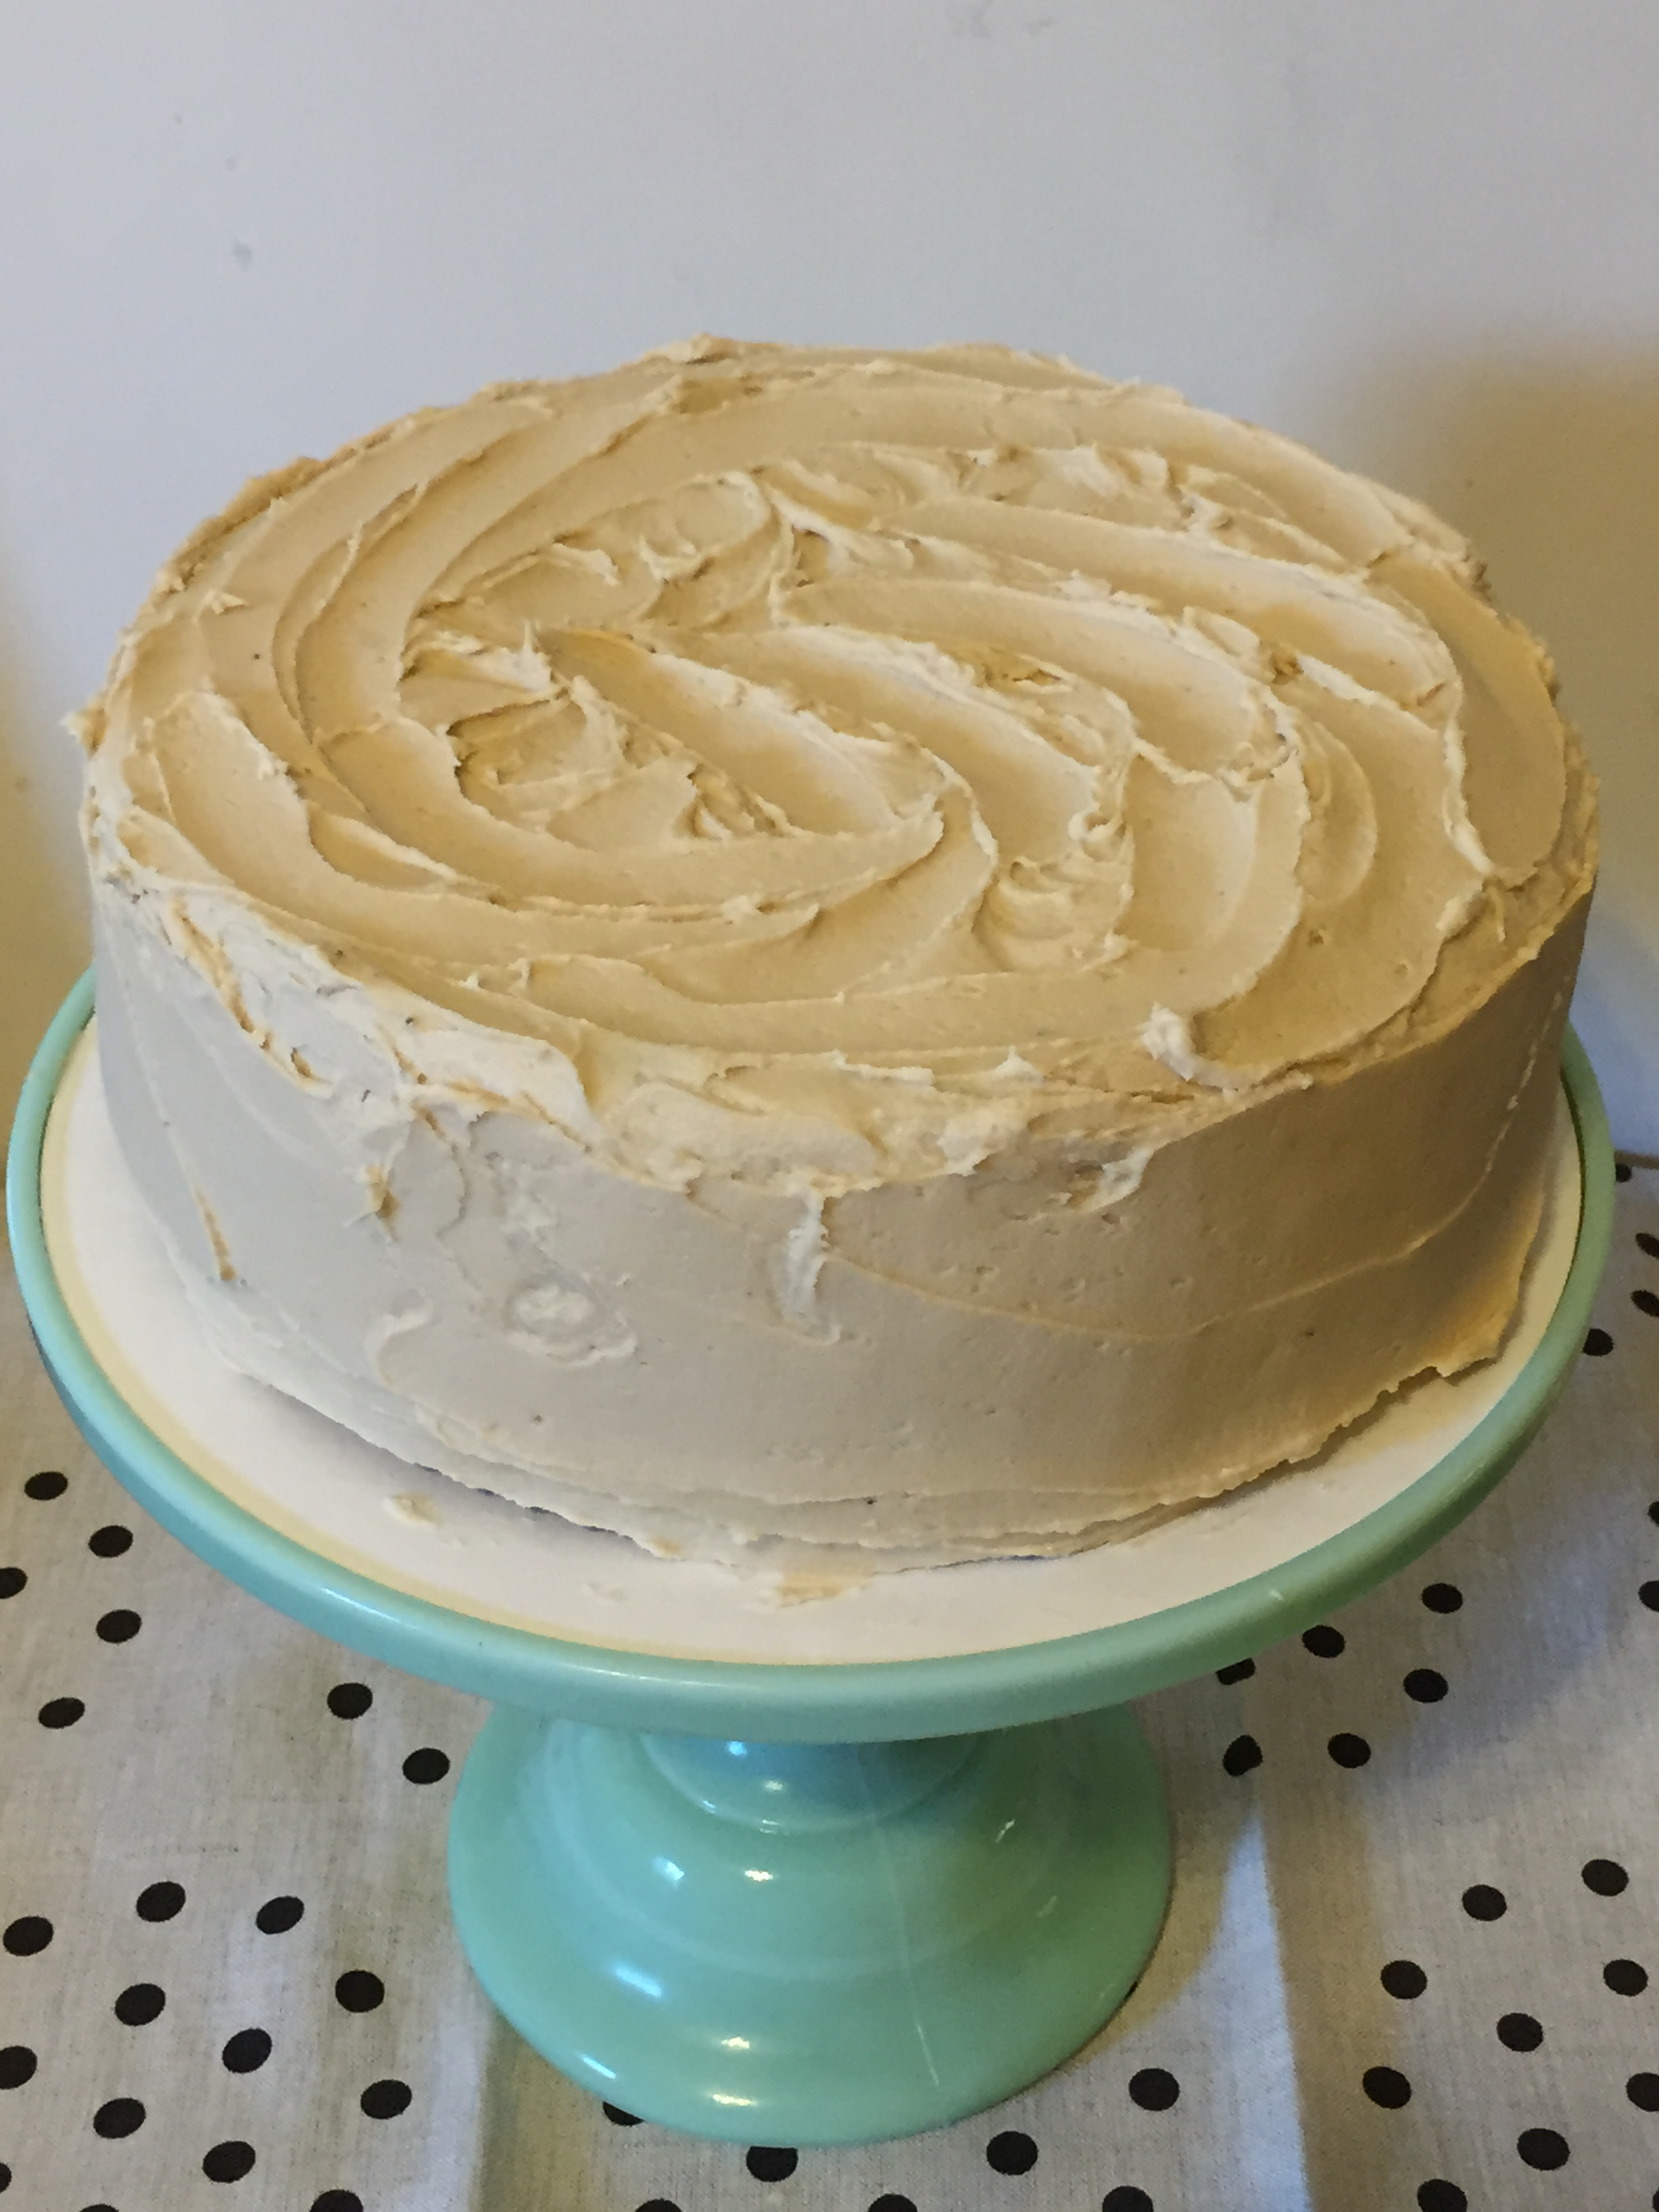 Permalink to Chocolate Cake With Penuche Frosting